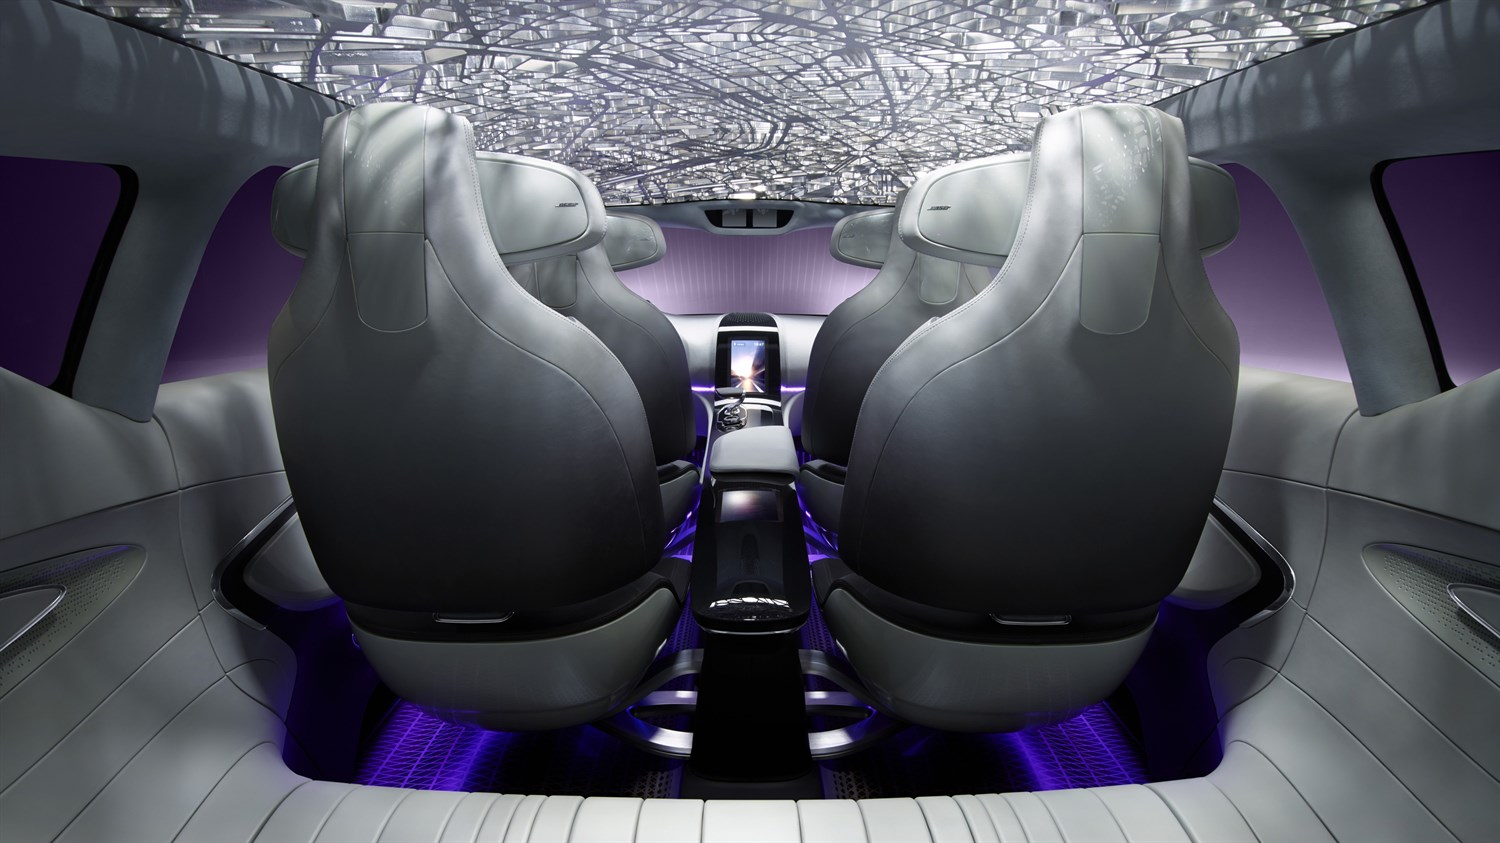 Renault INITIALE PARIS Concept - close-up of rear of cabin